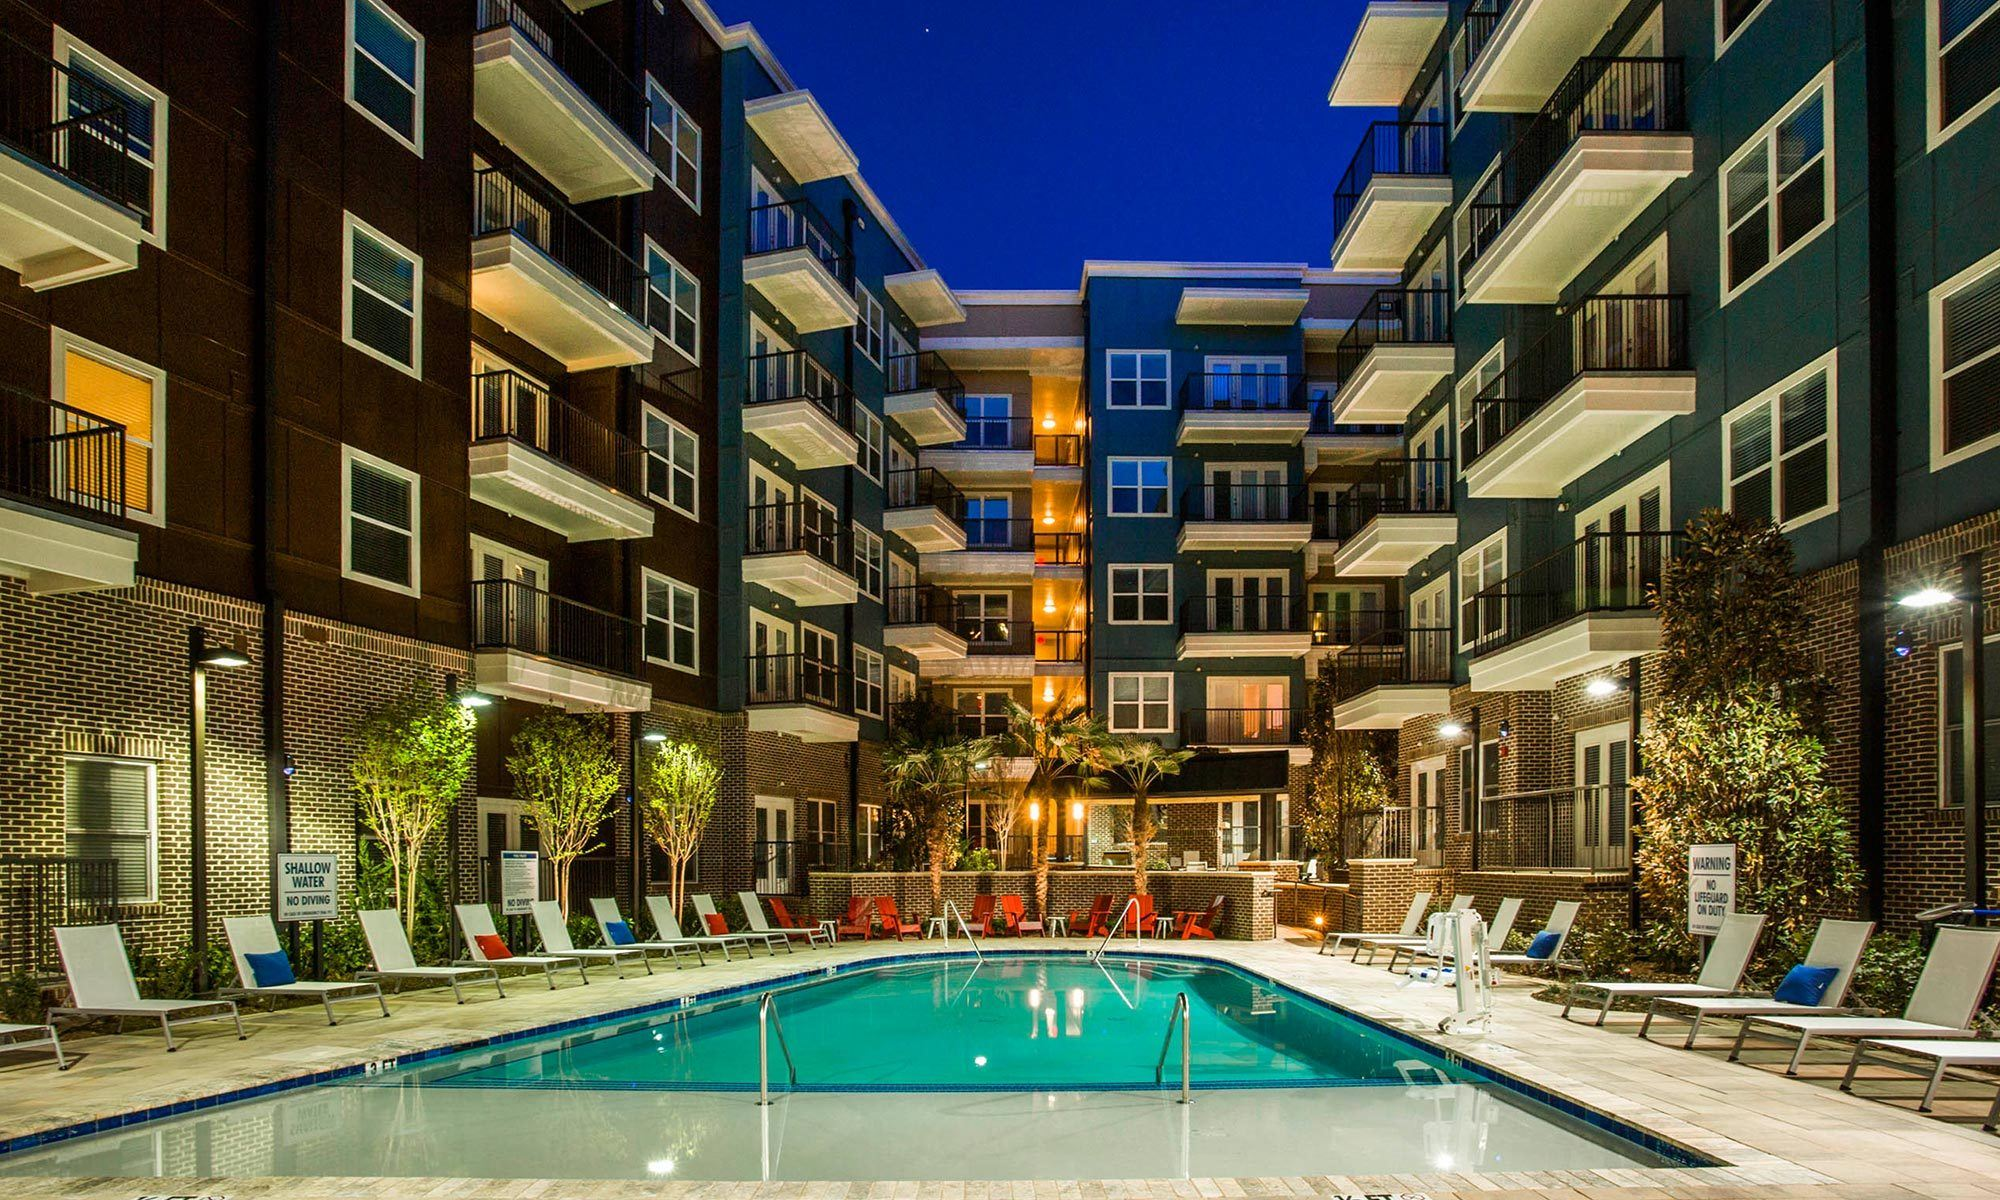 Welcome to Marq Midtown 205 luxury apartments